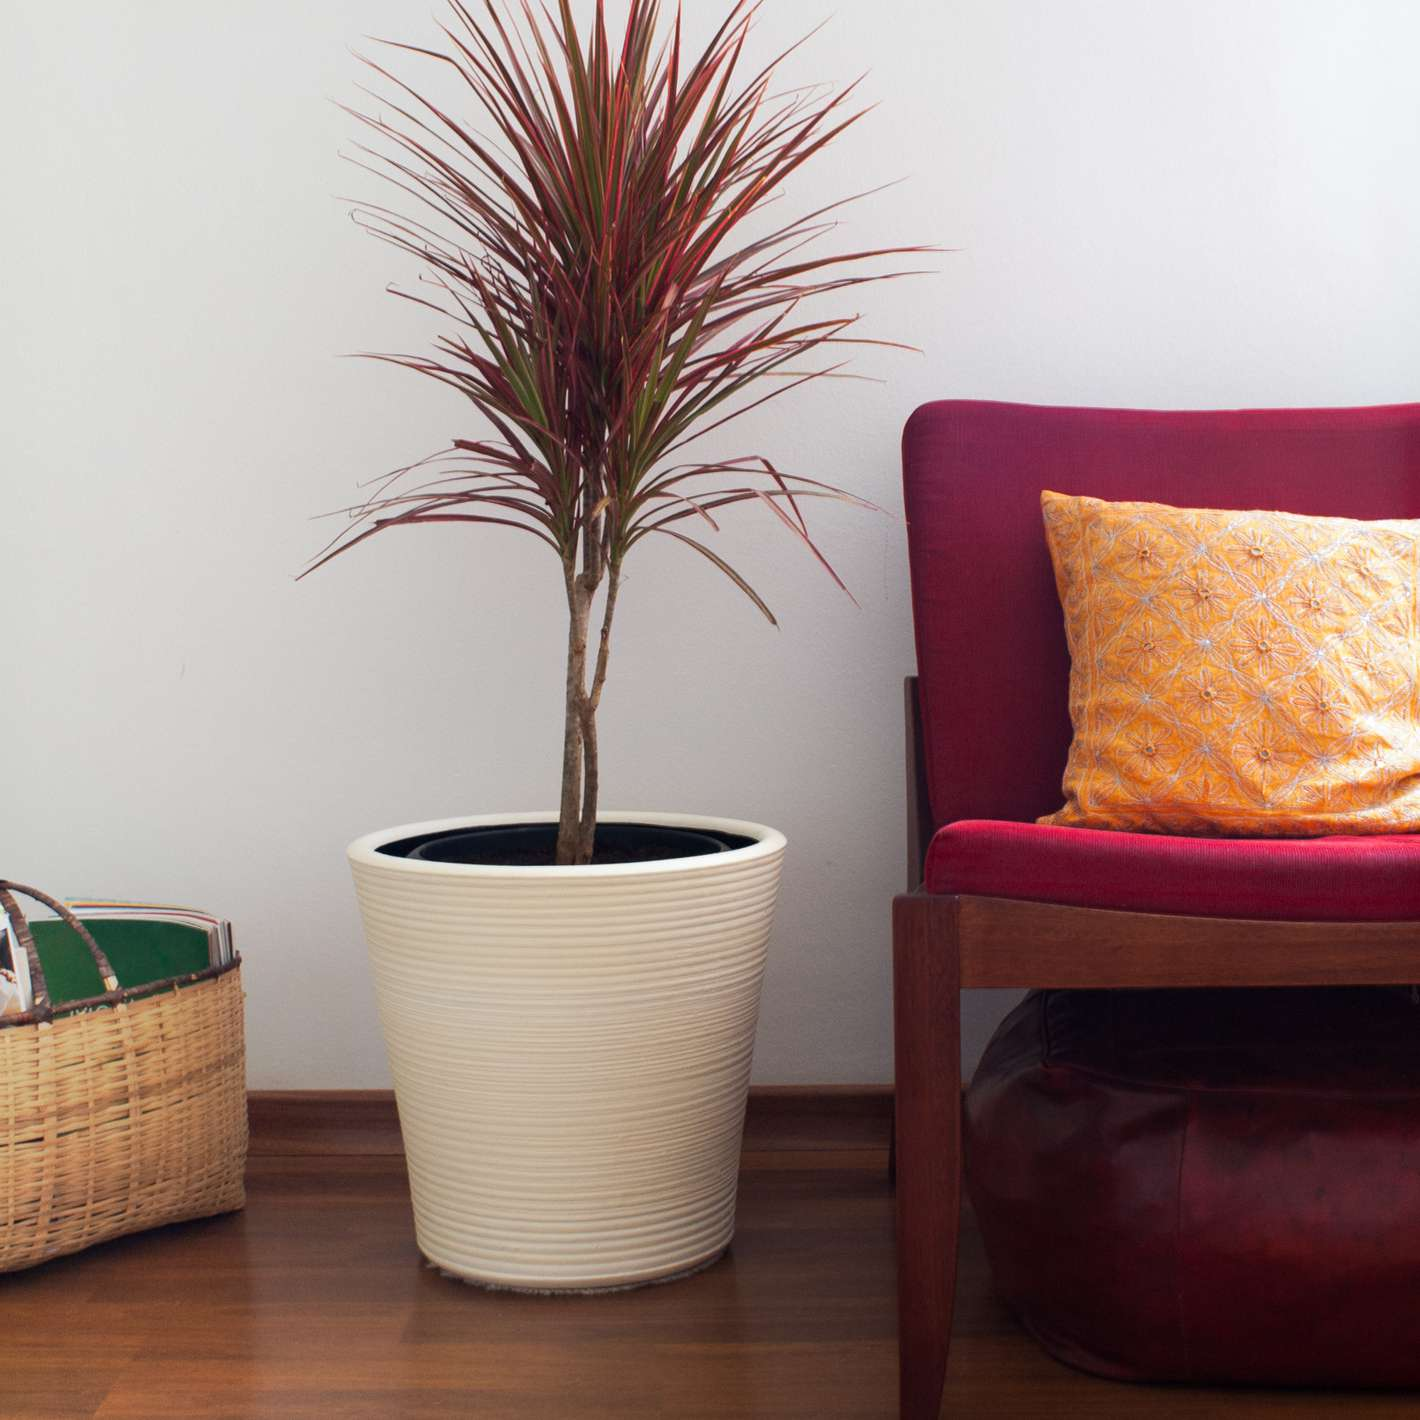 small pink-leaved dracaena plant in white ceramic pot next to magenta couch with orange pillow